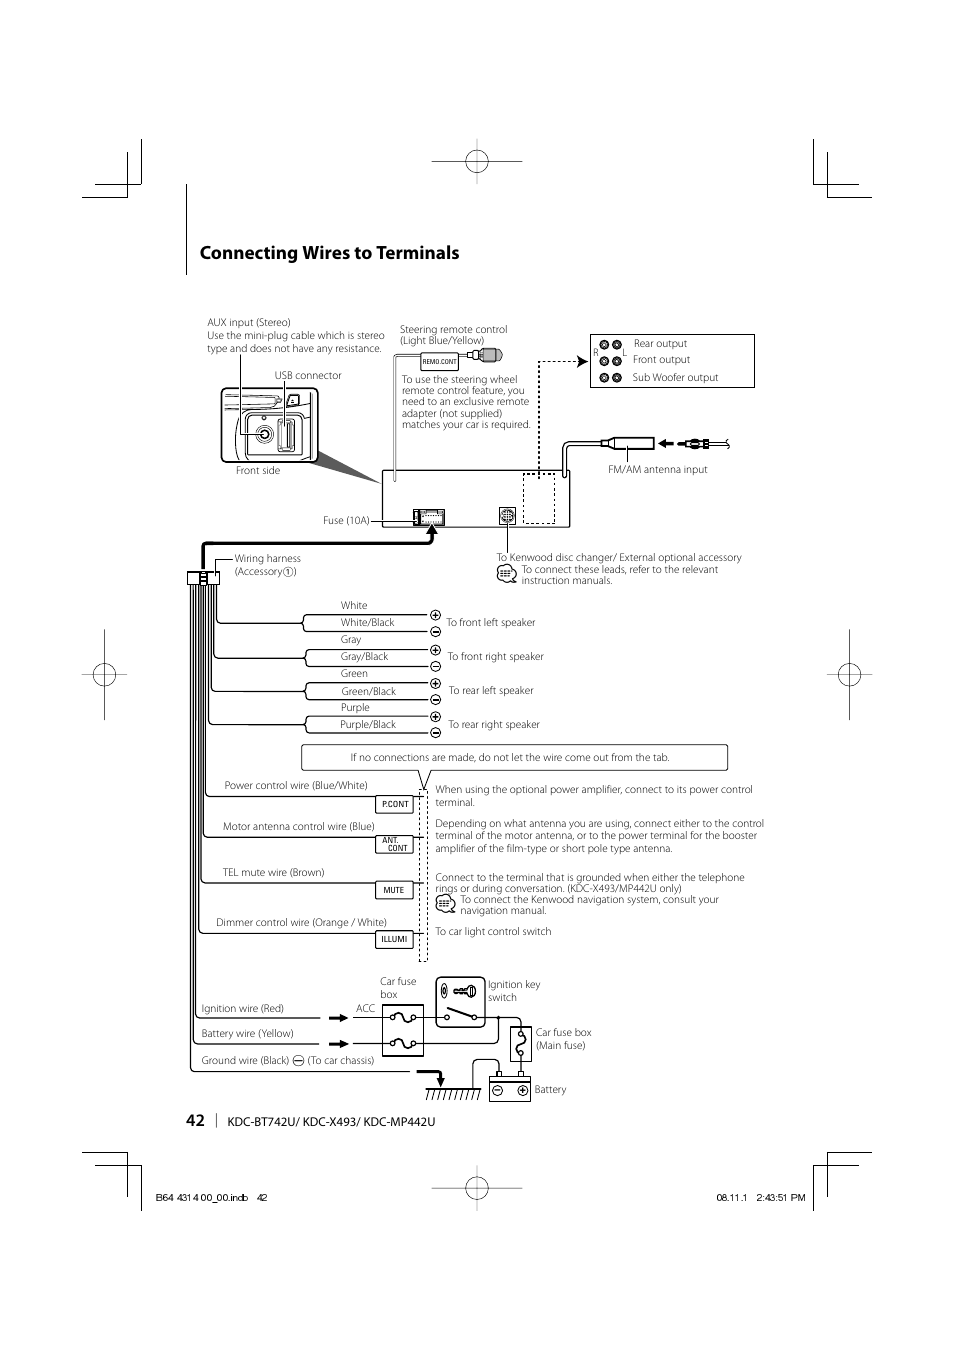 Connecting wires to terminals | Kenwood KDC-BT742U User Manual | Page 42 /  140